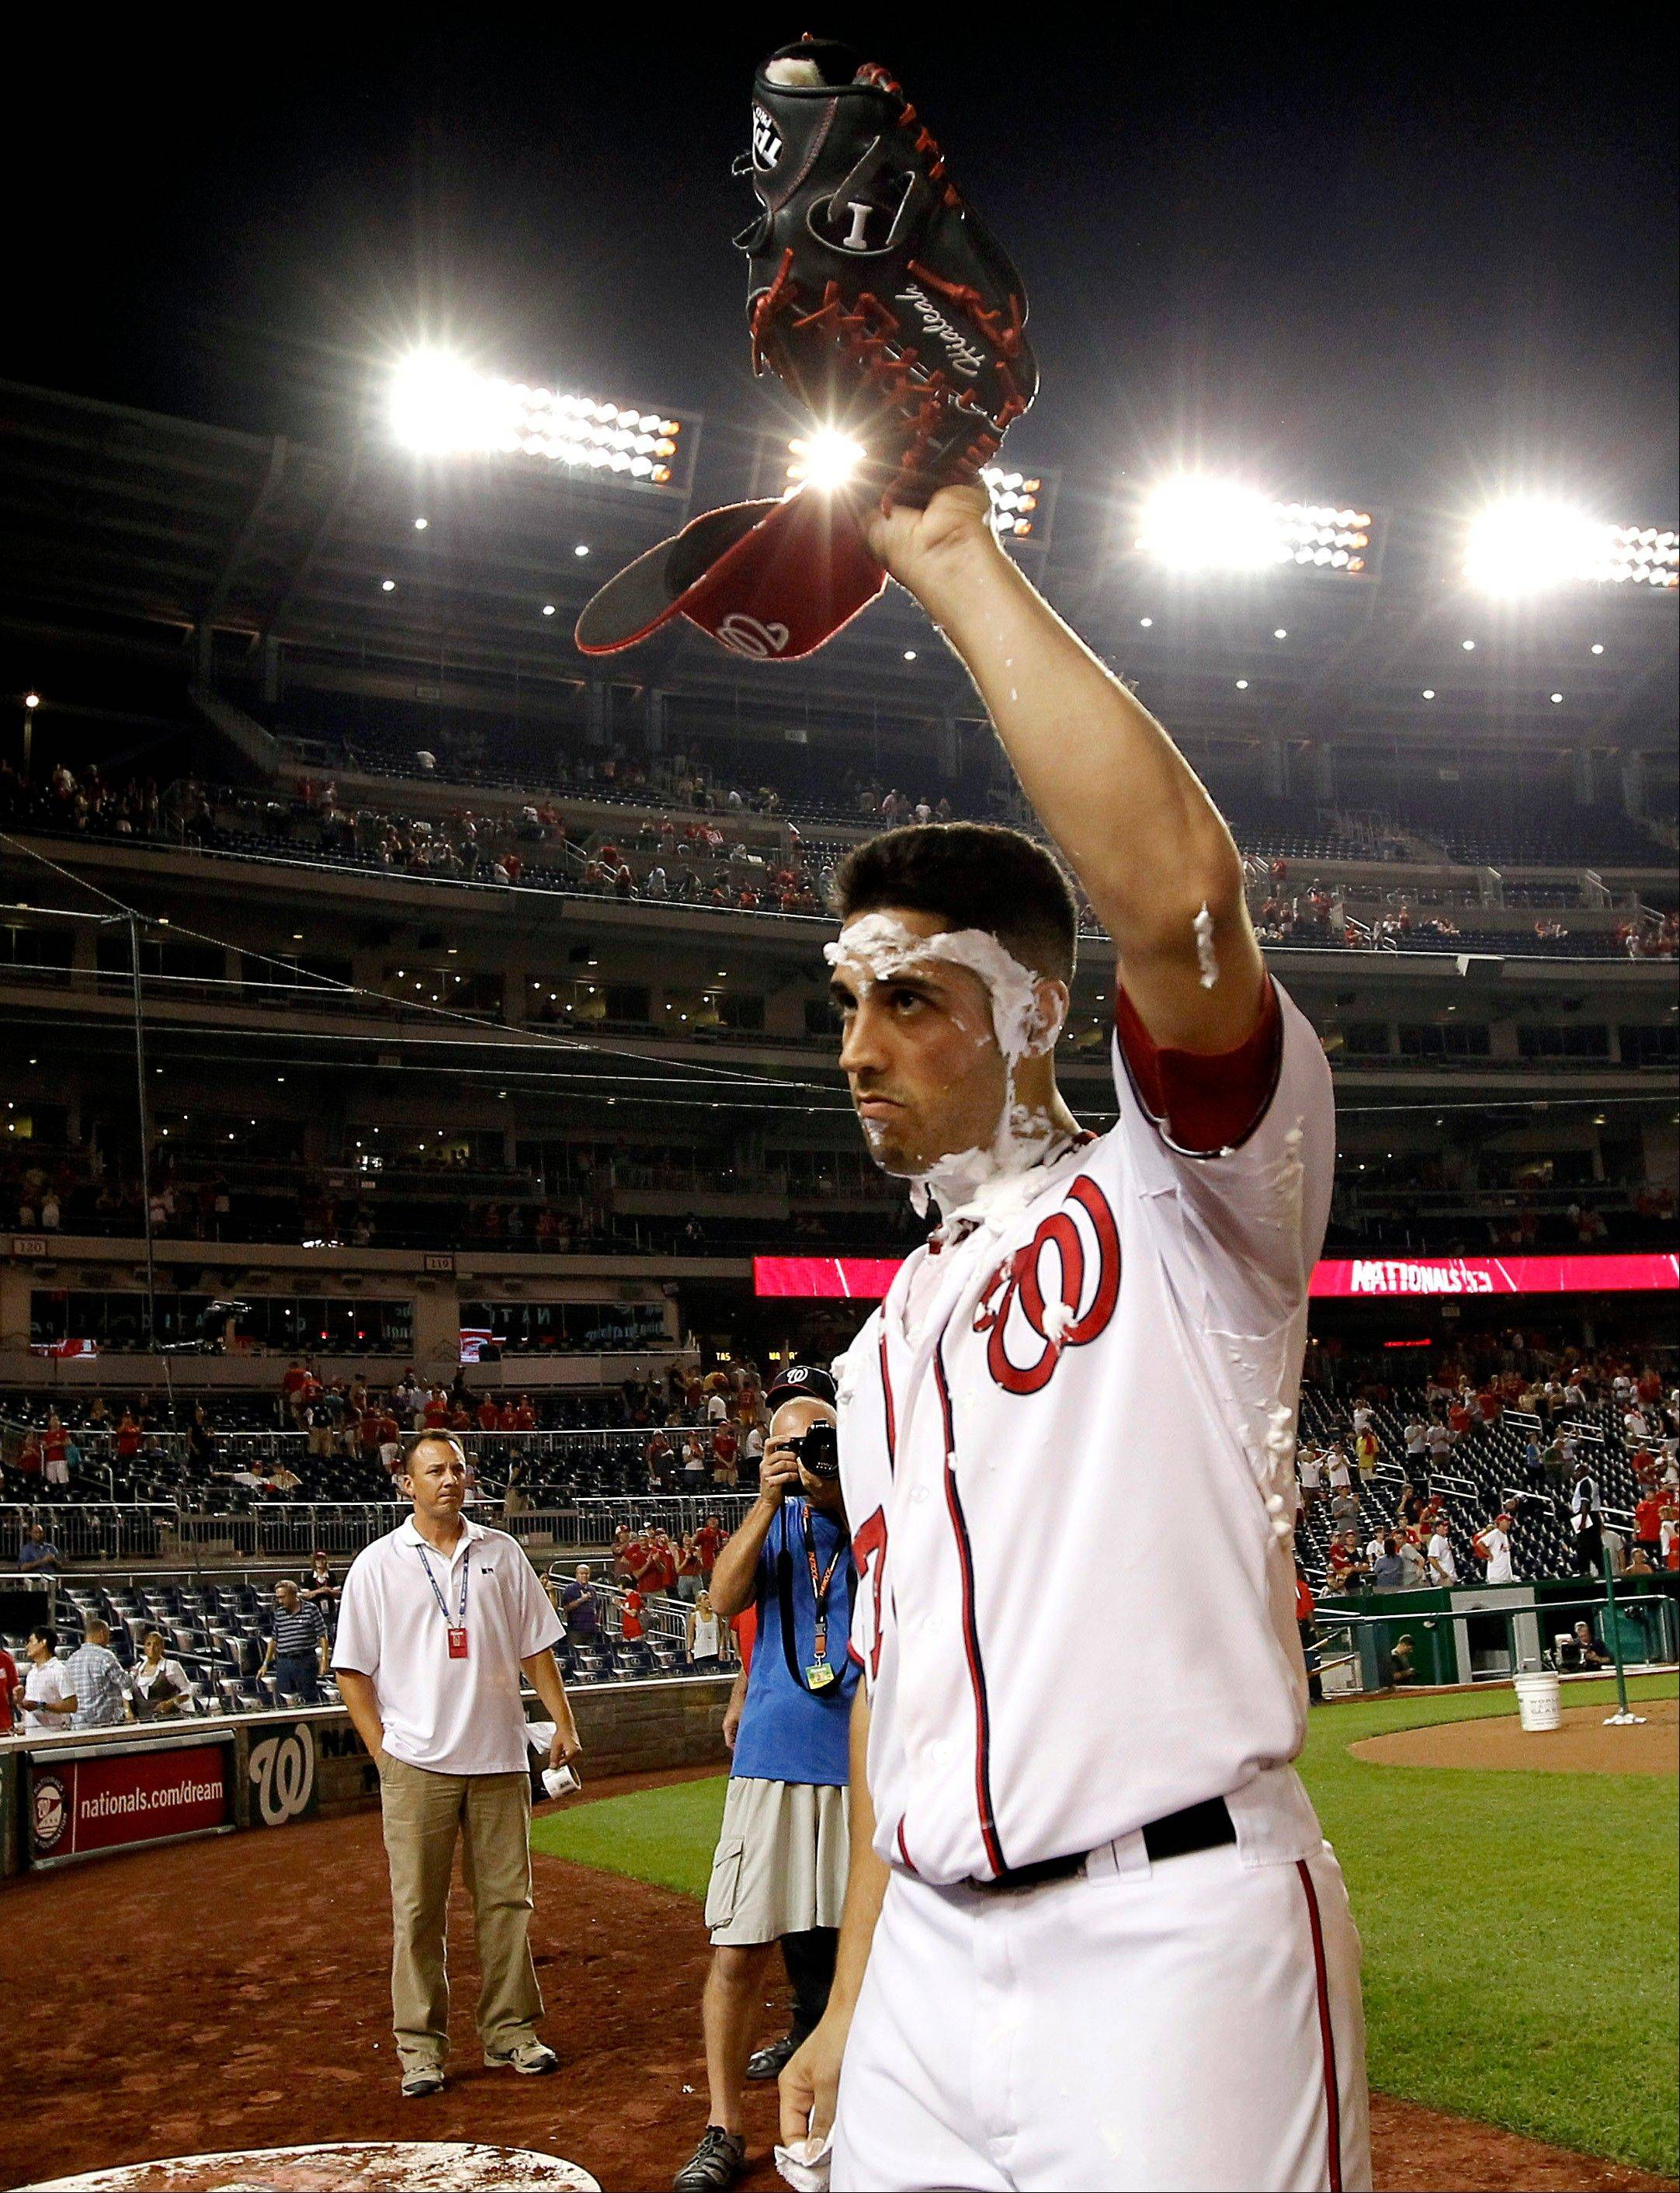 Washington Nationals starting pitcher Gio Gonzalez acknowledges the crowd after getting celebratory shaving cream smeared in his face. Gonzalez pitched a complete-game shutout Friday at home against the St. Louis Cardinals.